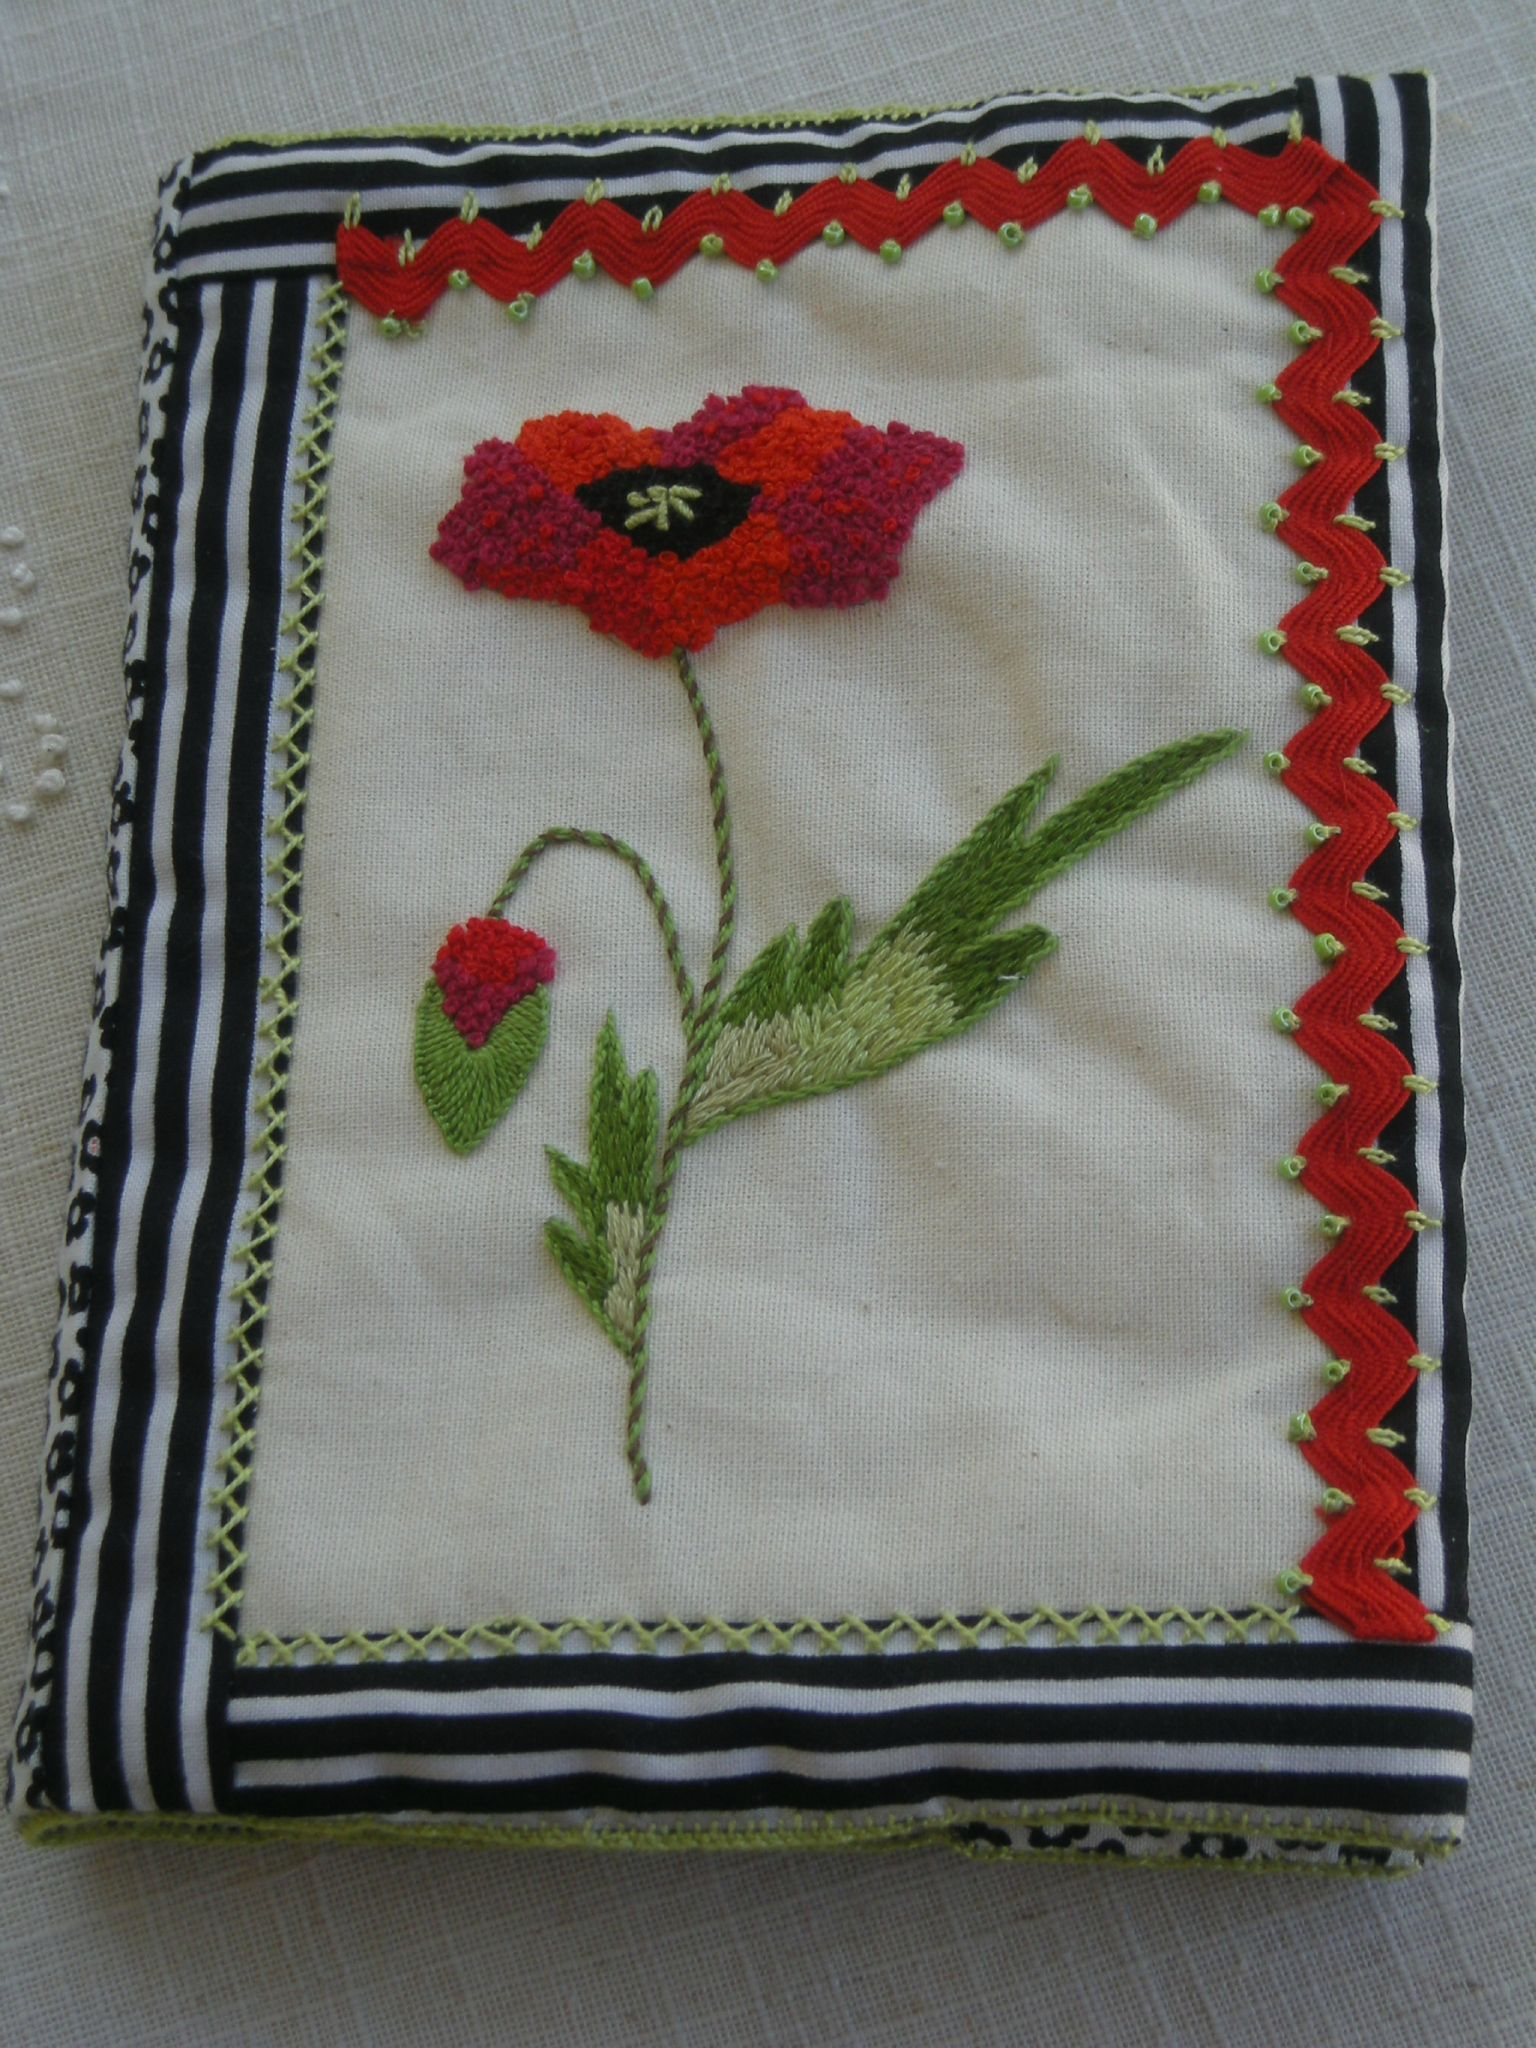 protège-cahier coquelicot